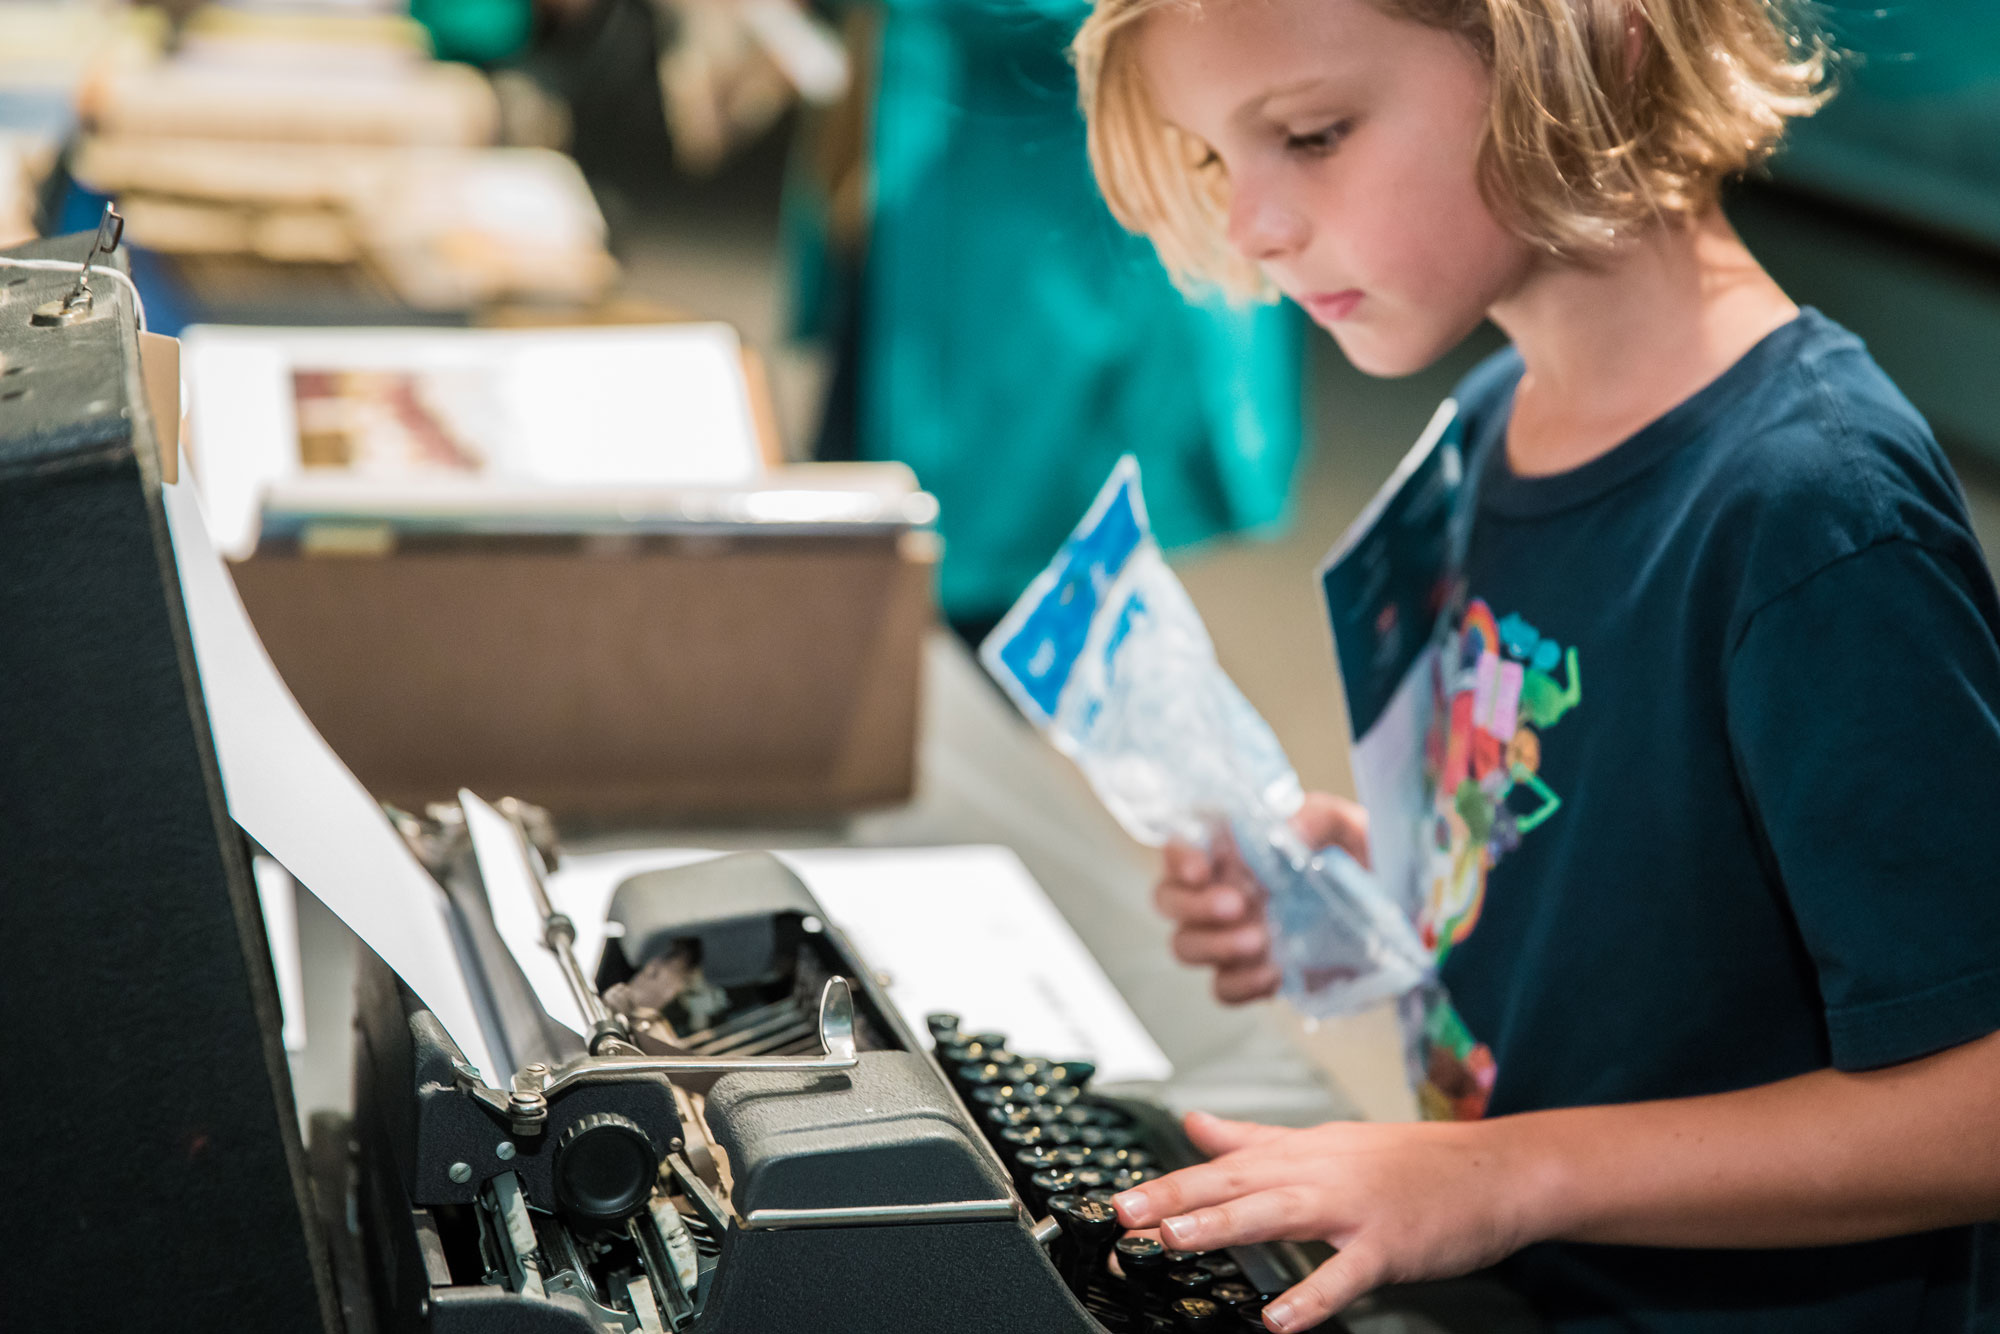 Child uses typewriter